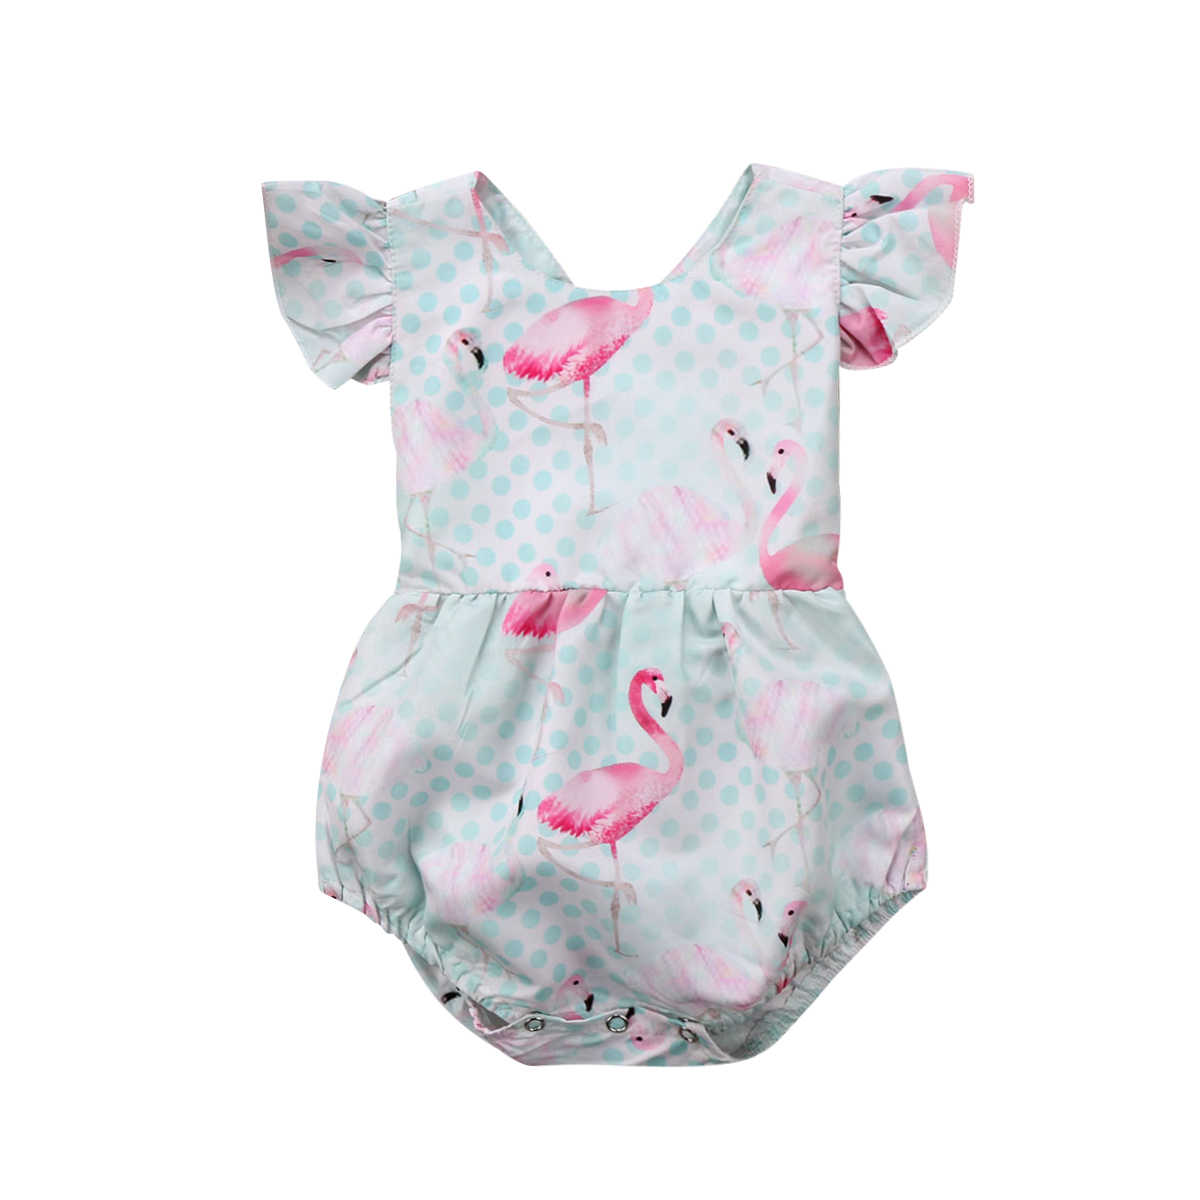 eaf4b15ed Detail Feedback Questions about Newborn Infant Baby Girl Ruffles ...